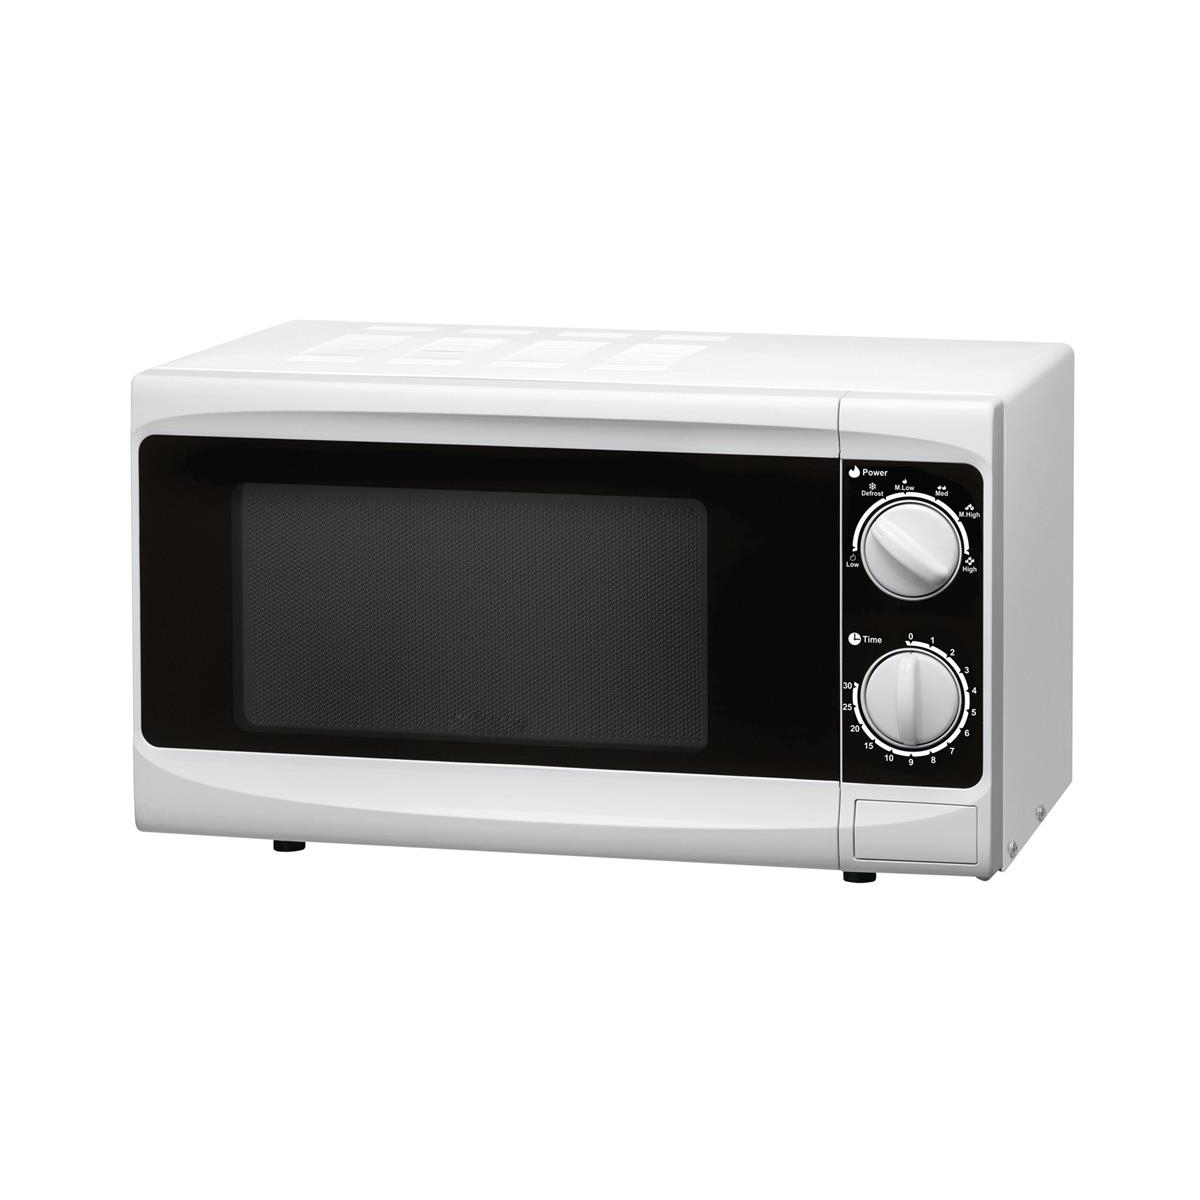 Kitchen Appliances 5 Star Facilities Manual Microwave Defrost and 5 Power Levels 800W 20 Litre White